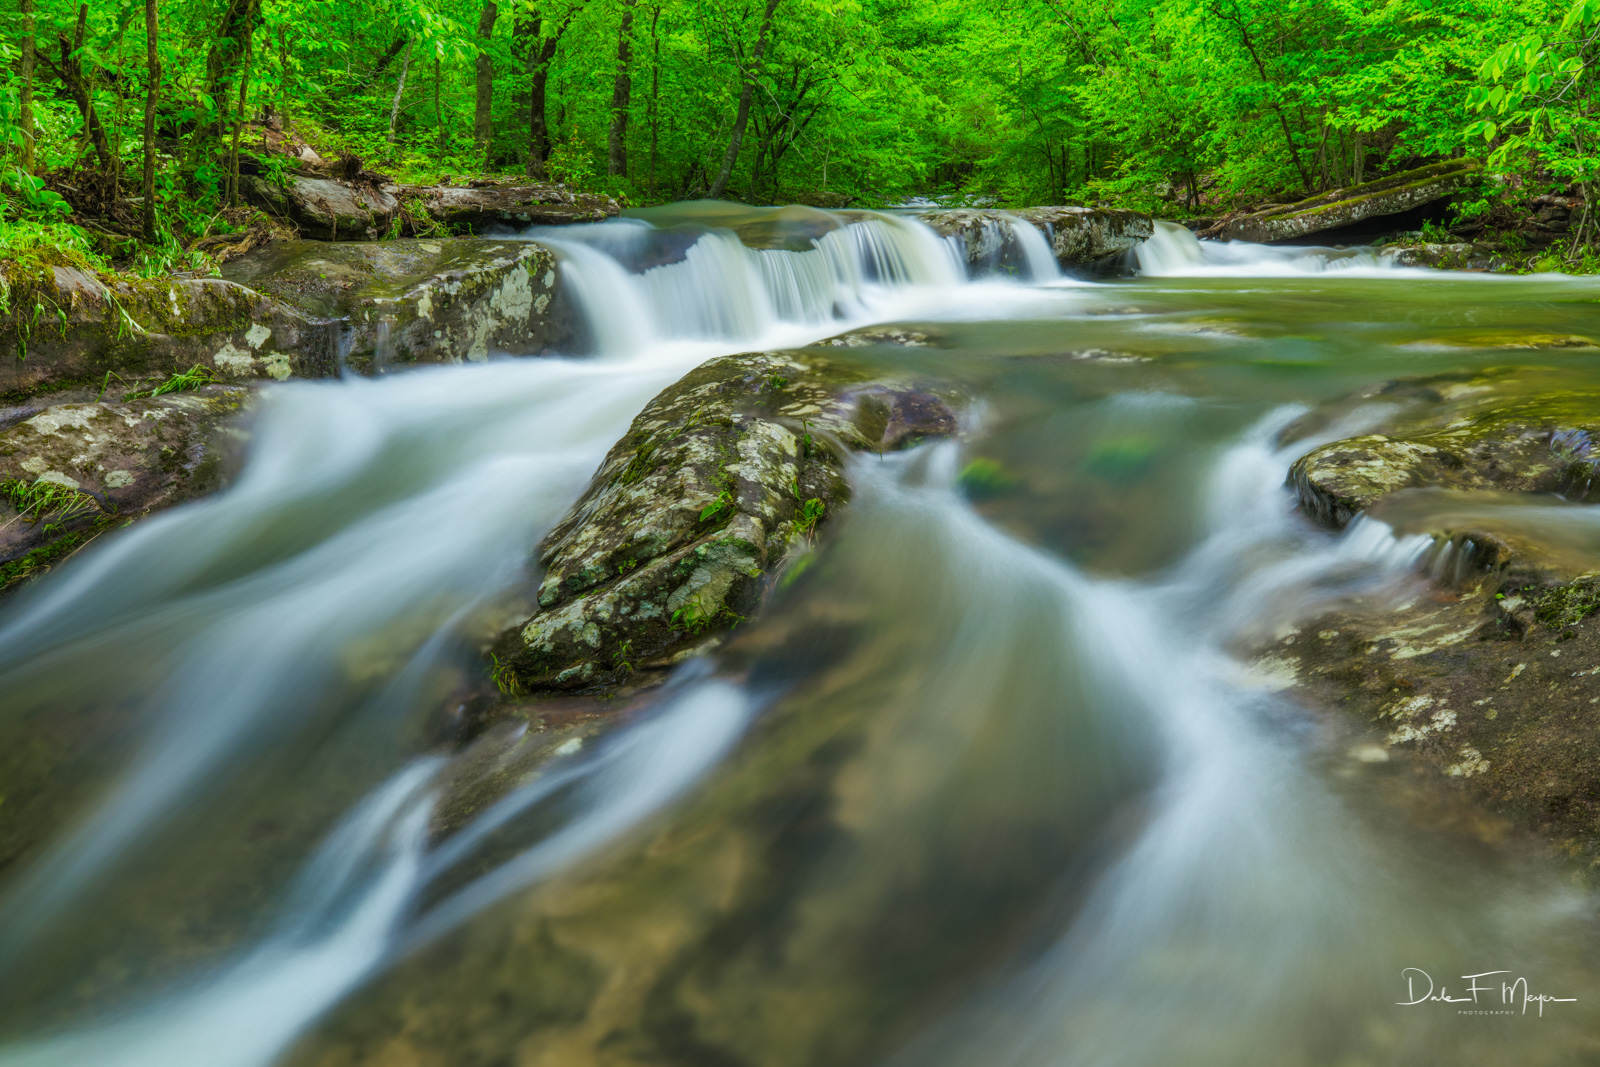 Spring in a favorite place of mine on Whitaker Creek in the Upper Buffalo Wilderness Area of the Ozark National Forest.  This...